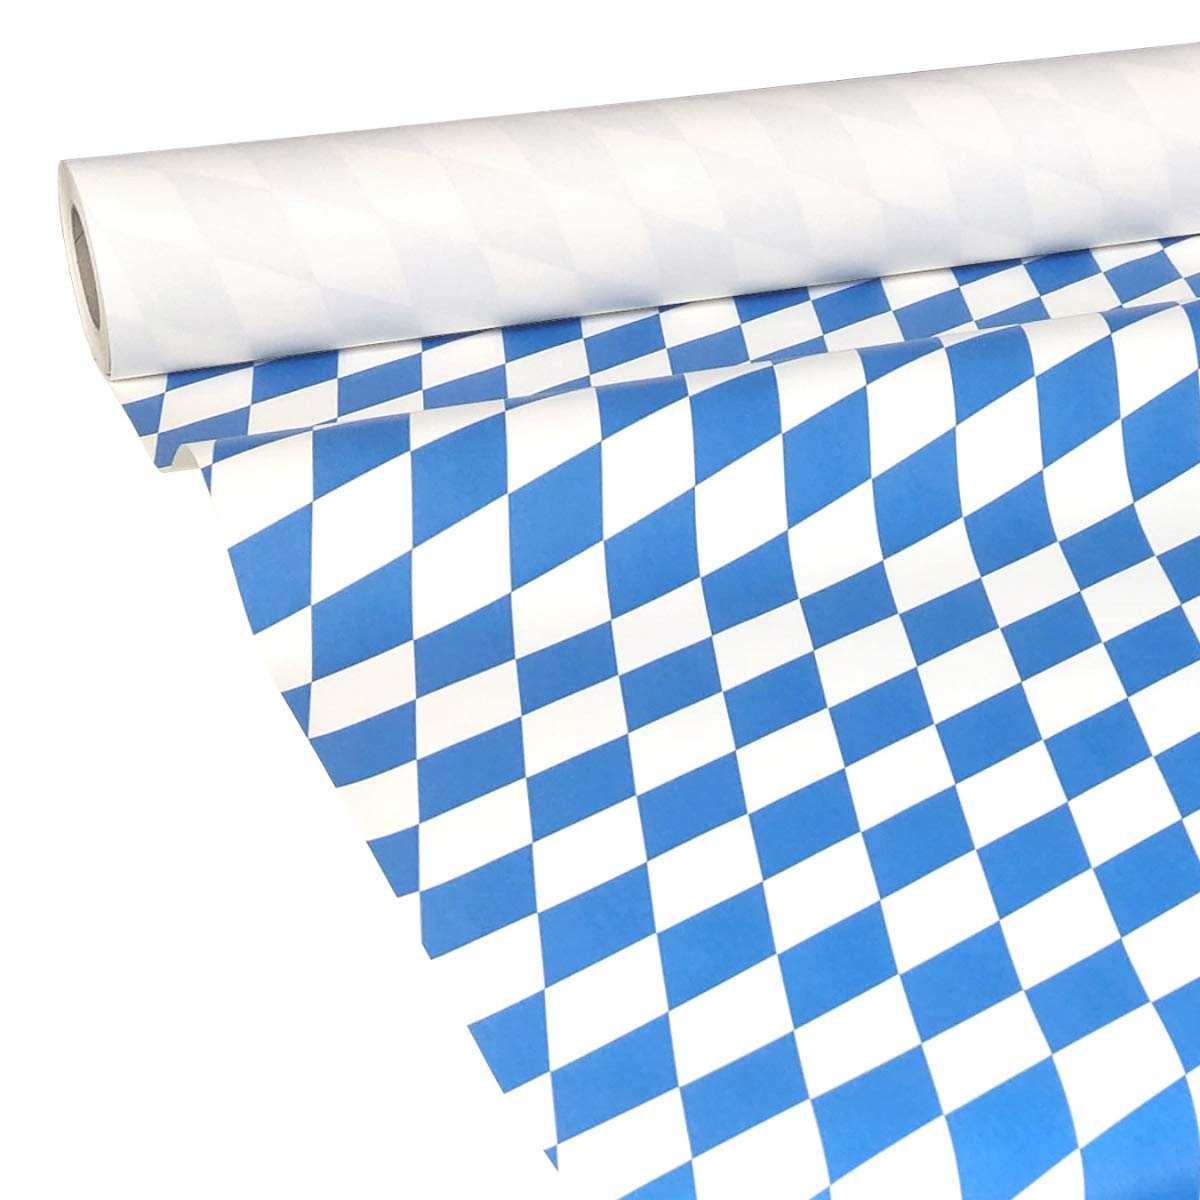 50M x 0,20M JUNOPAX/® Banquet Roll paper table runners Bavaria Oktoberfest Disposable Table Runners wetproof and damp wipeable